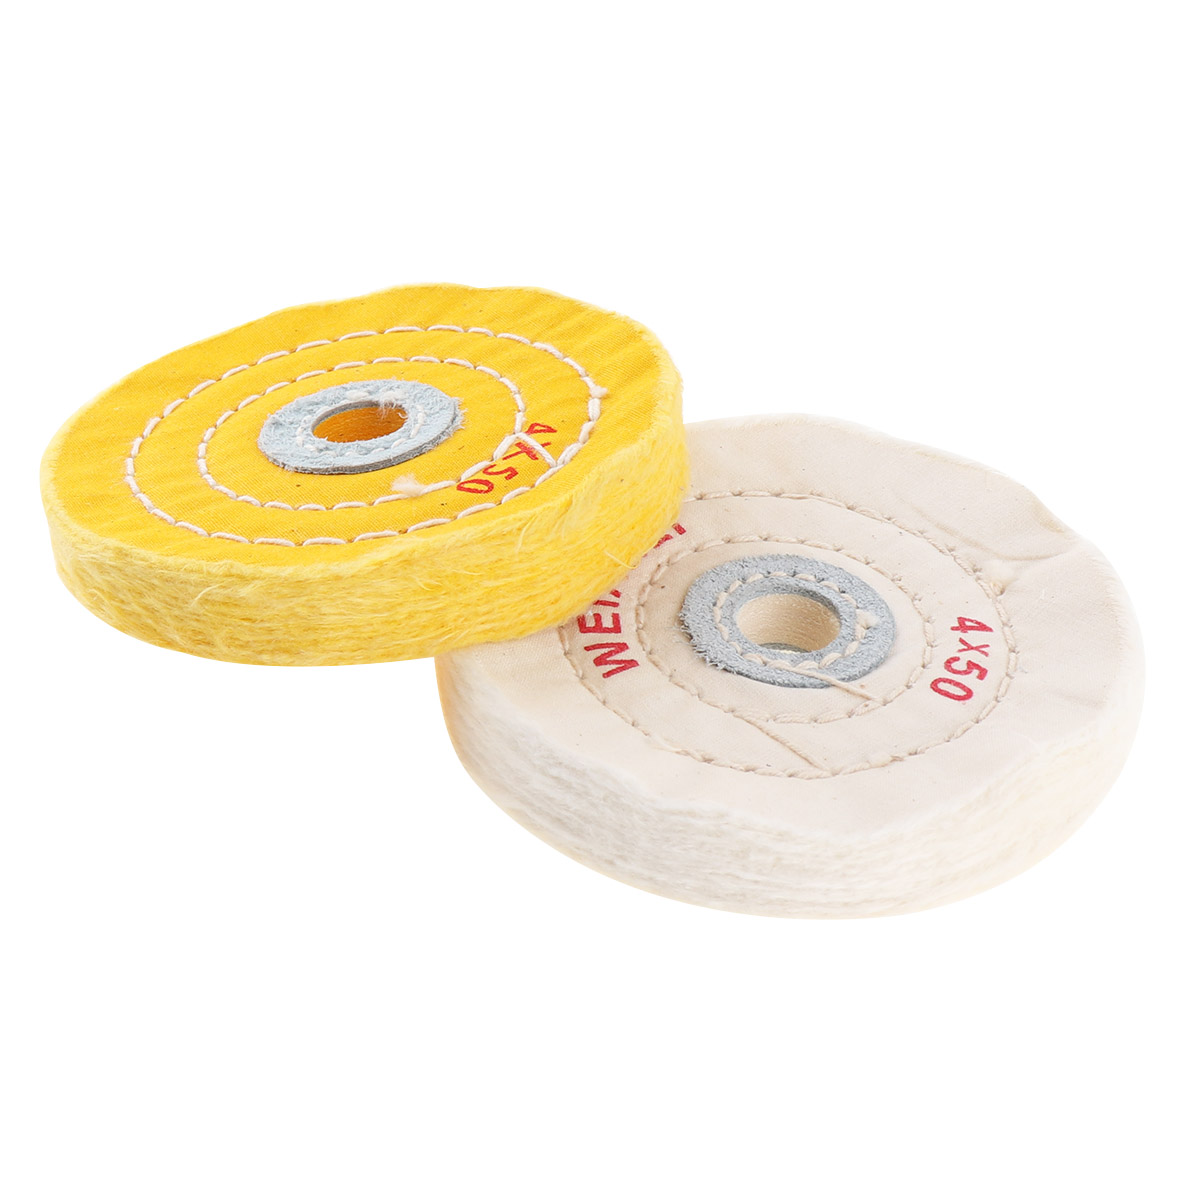 Excellent Details About 2X 4 Buffing Soft Polishing Buffer Polish Wheel Pad Kit For Table Bench Grinder Ocoug Best Dining Table And Chair Ideas Images Ocougorg